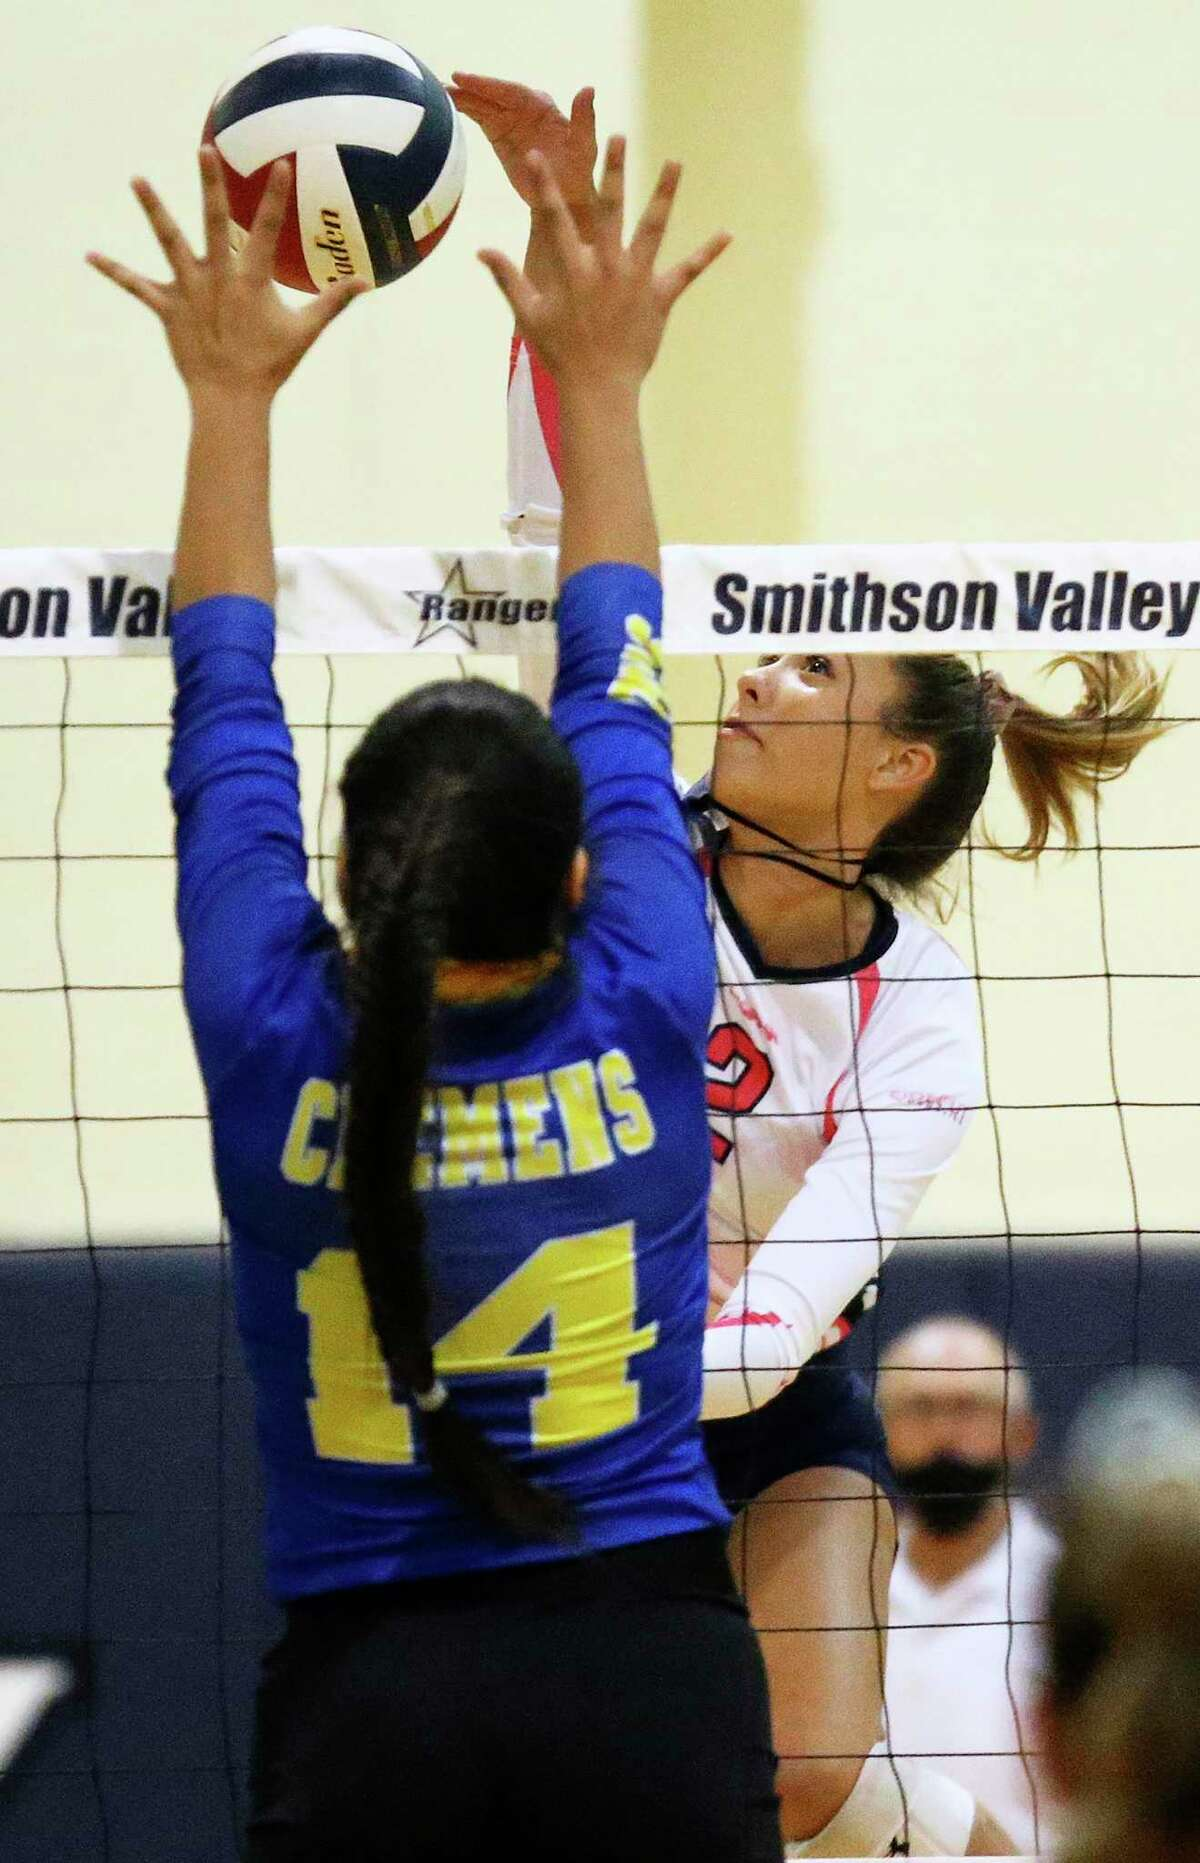 Ranger hitter Bekah Williams slams a shot over Crislyne Moreno as Smithson Valley hosts Clemens in volleyball on Oct. 27, 2020.